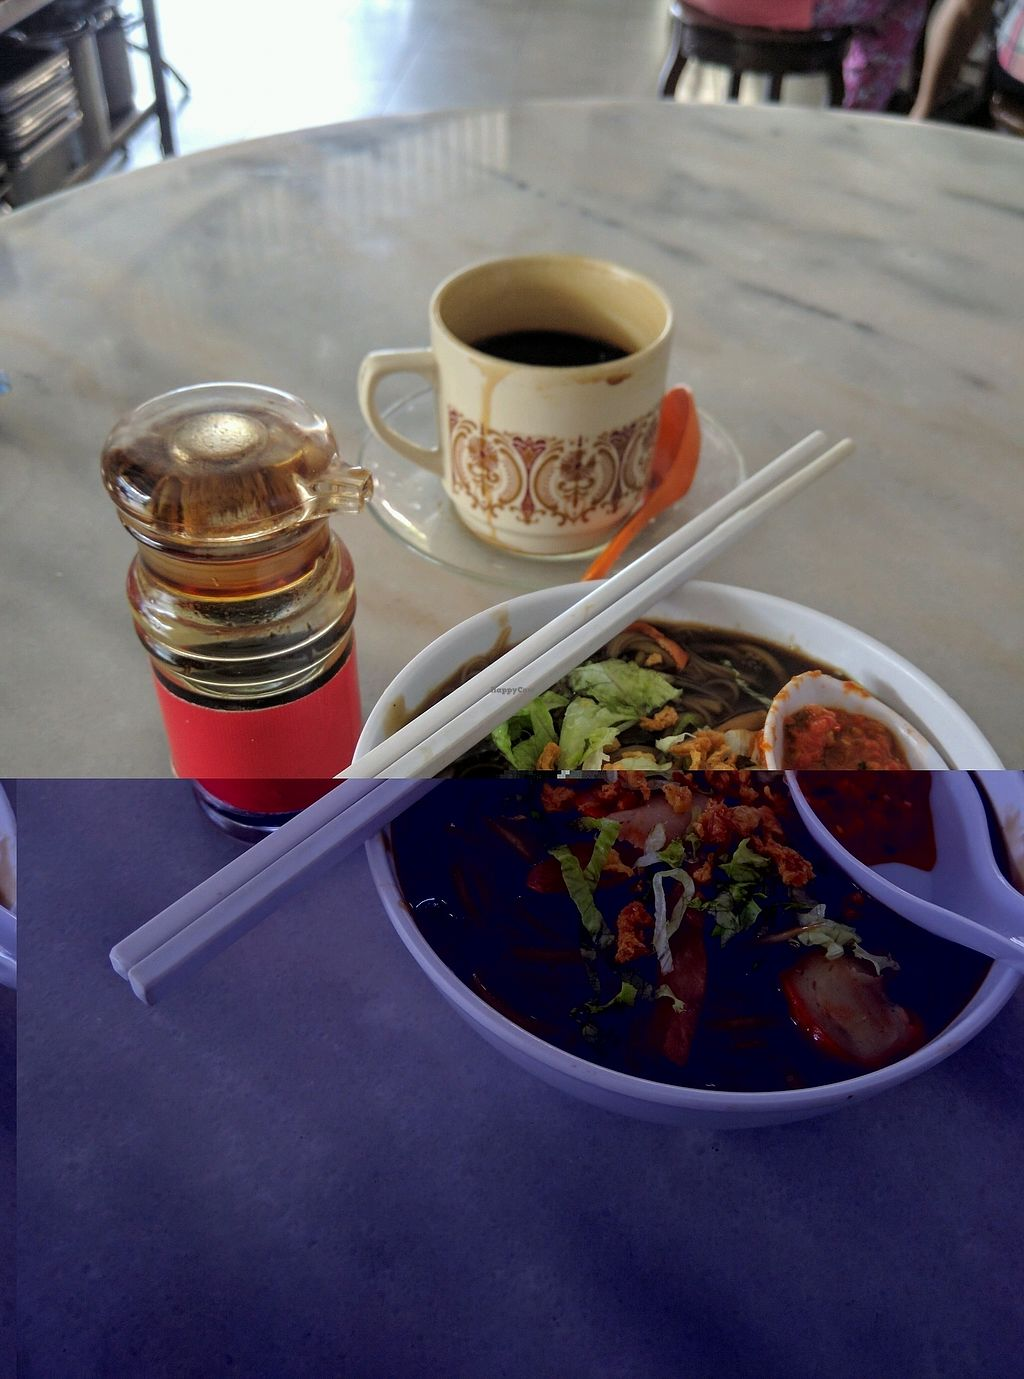 """Photo of CLOSED: Shan Lai Vegetarian Stall  by <a href=""""/members/profile/Summer_Tan"""">Summer_Tan</a> <br/>Vegetarian Lor Mee with Mock Meat, Mushrooms, Tofu. Request for Chilli (kinda lime Sambal) and Black Vinegar to really make it tasty! Black Coffee from Asia Cafe = Cheap and good! Definitely a good vegetarian alternatives to the usual hawker food <br/> January 28, 2018  - <a href='/contact/abuse/image/46713/351992'>Report</a>"""